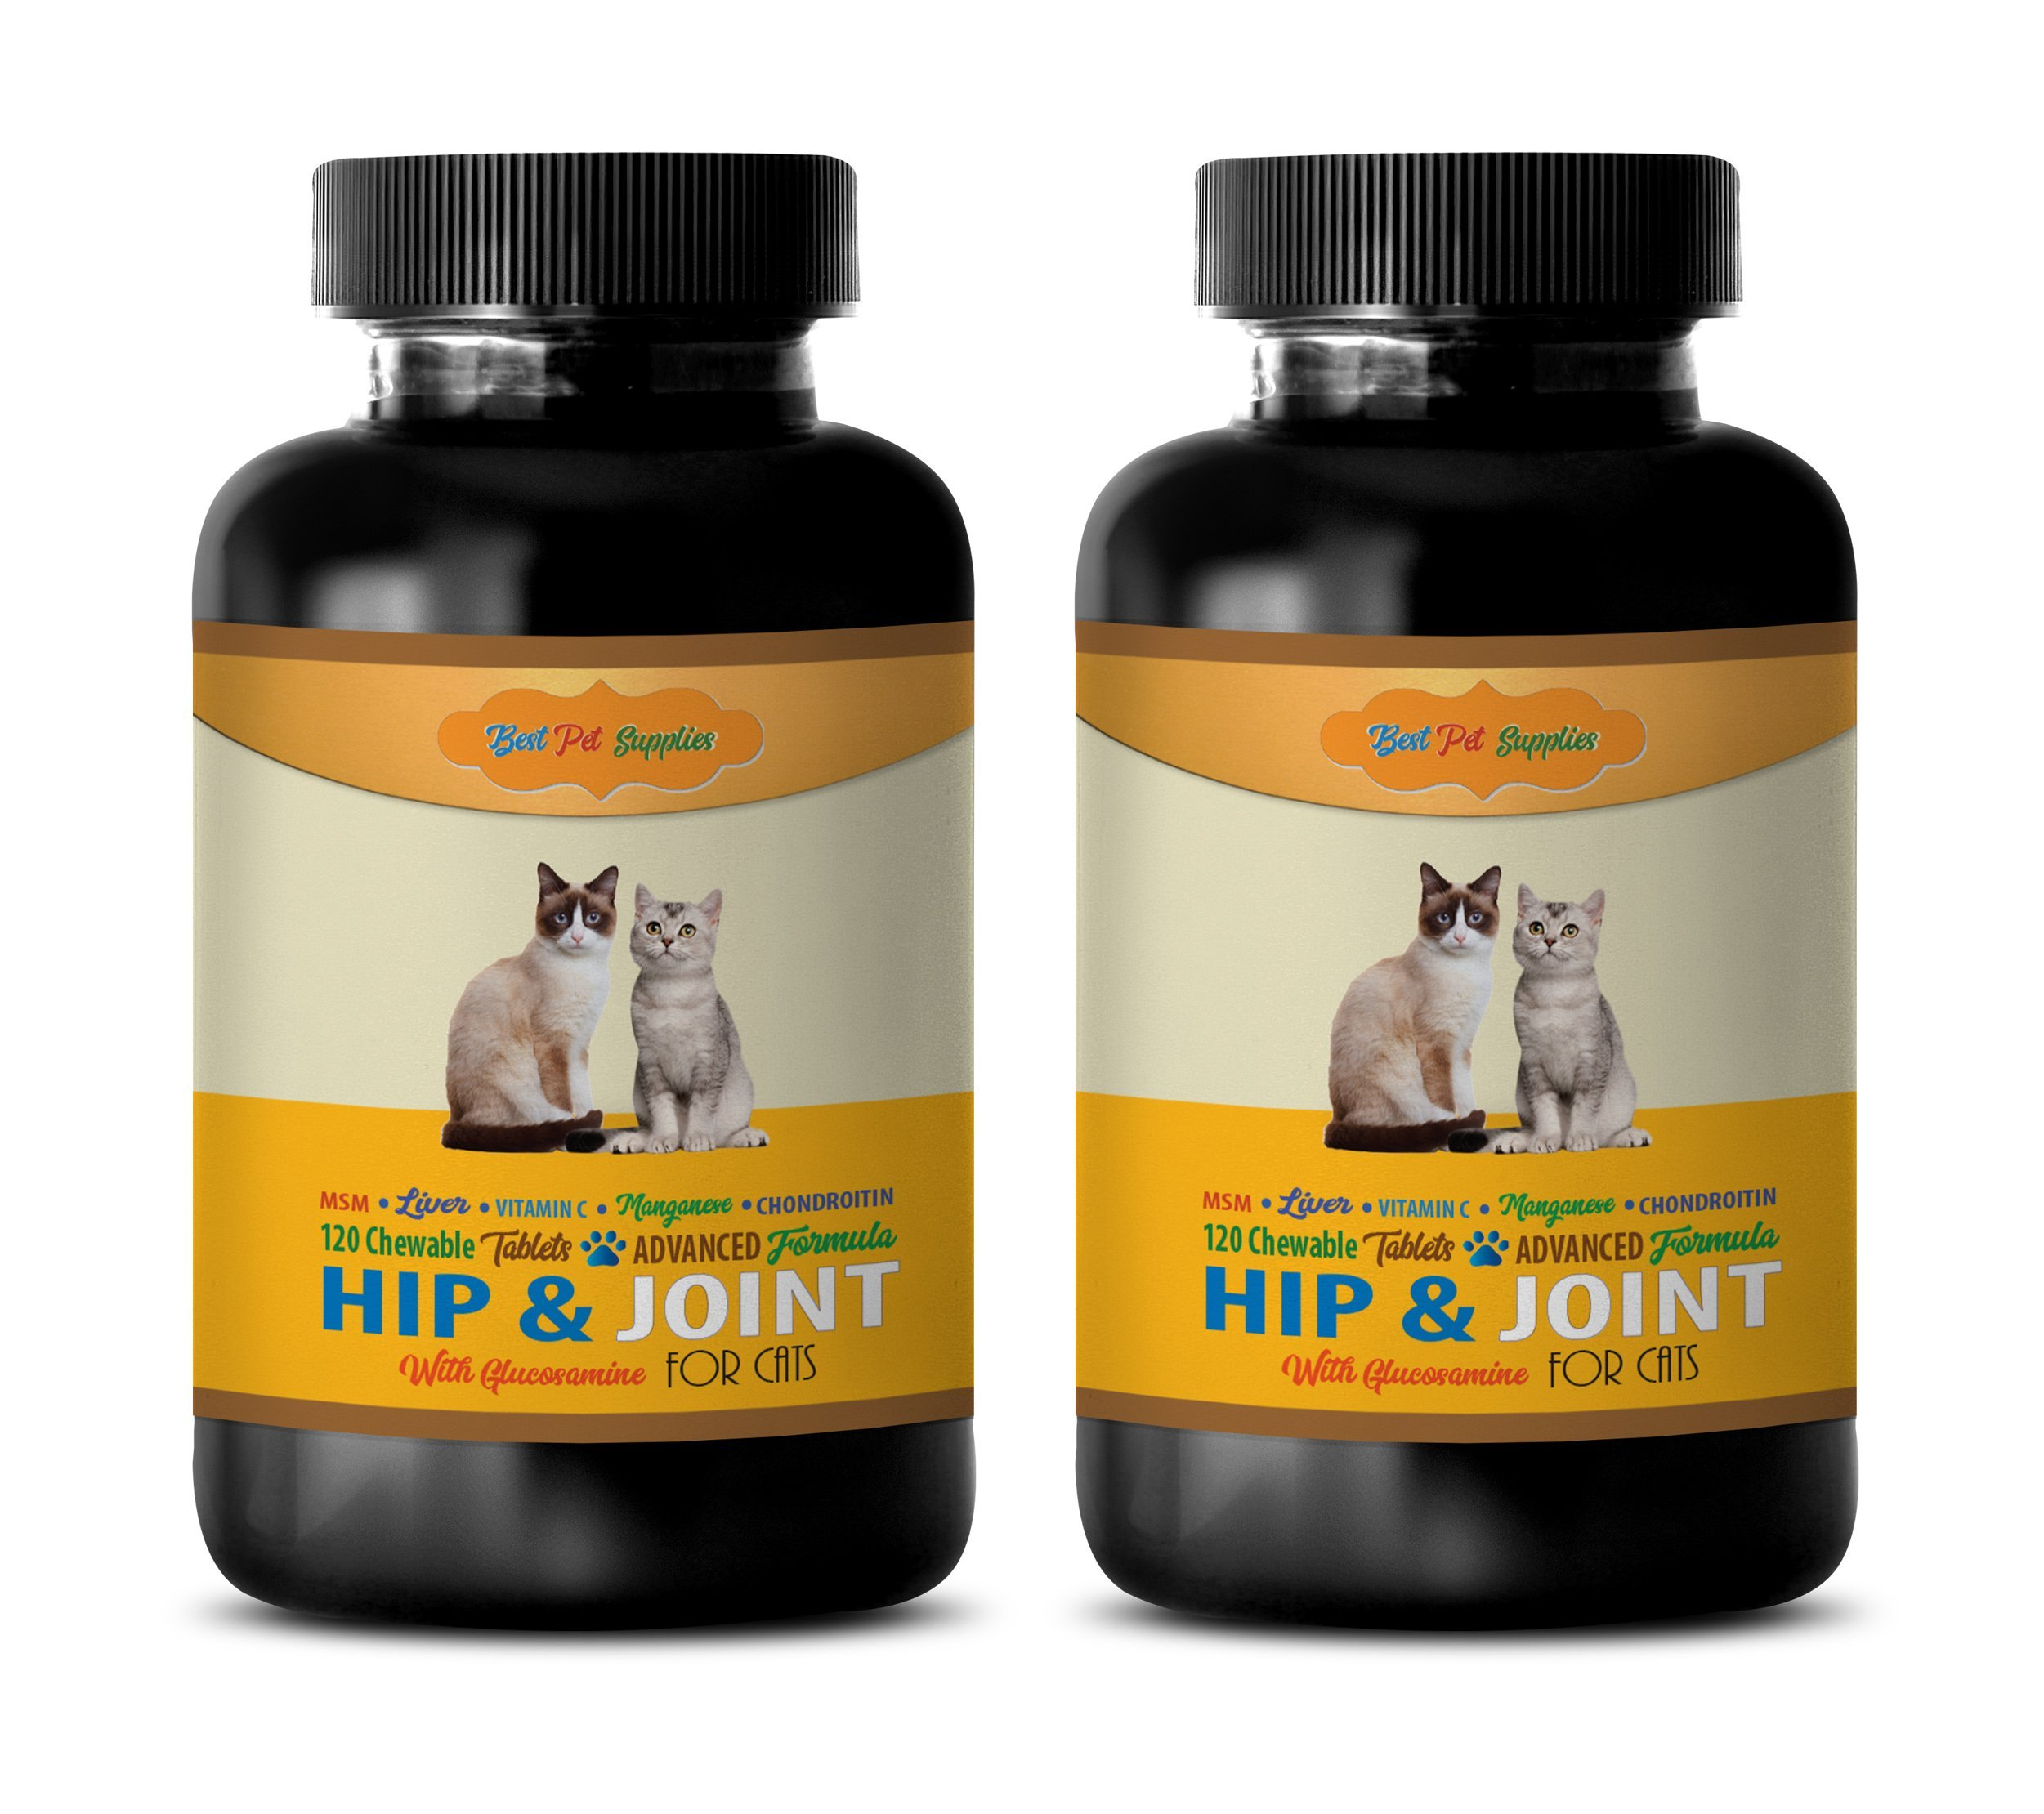 BEST PET SUPPLIES LLC cat hip and joint pain relief - PREMIUM HIP AND JOINT SUPPORT - CATS HEALTH - MOBILITY SUPPORT - cat vitamins treats - 240 Chews (2 Bottle)